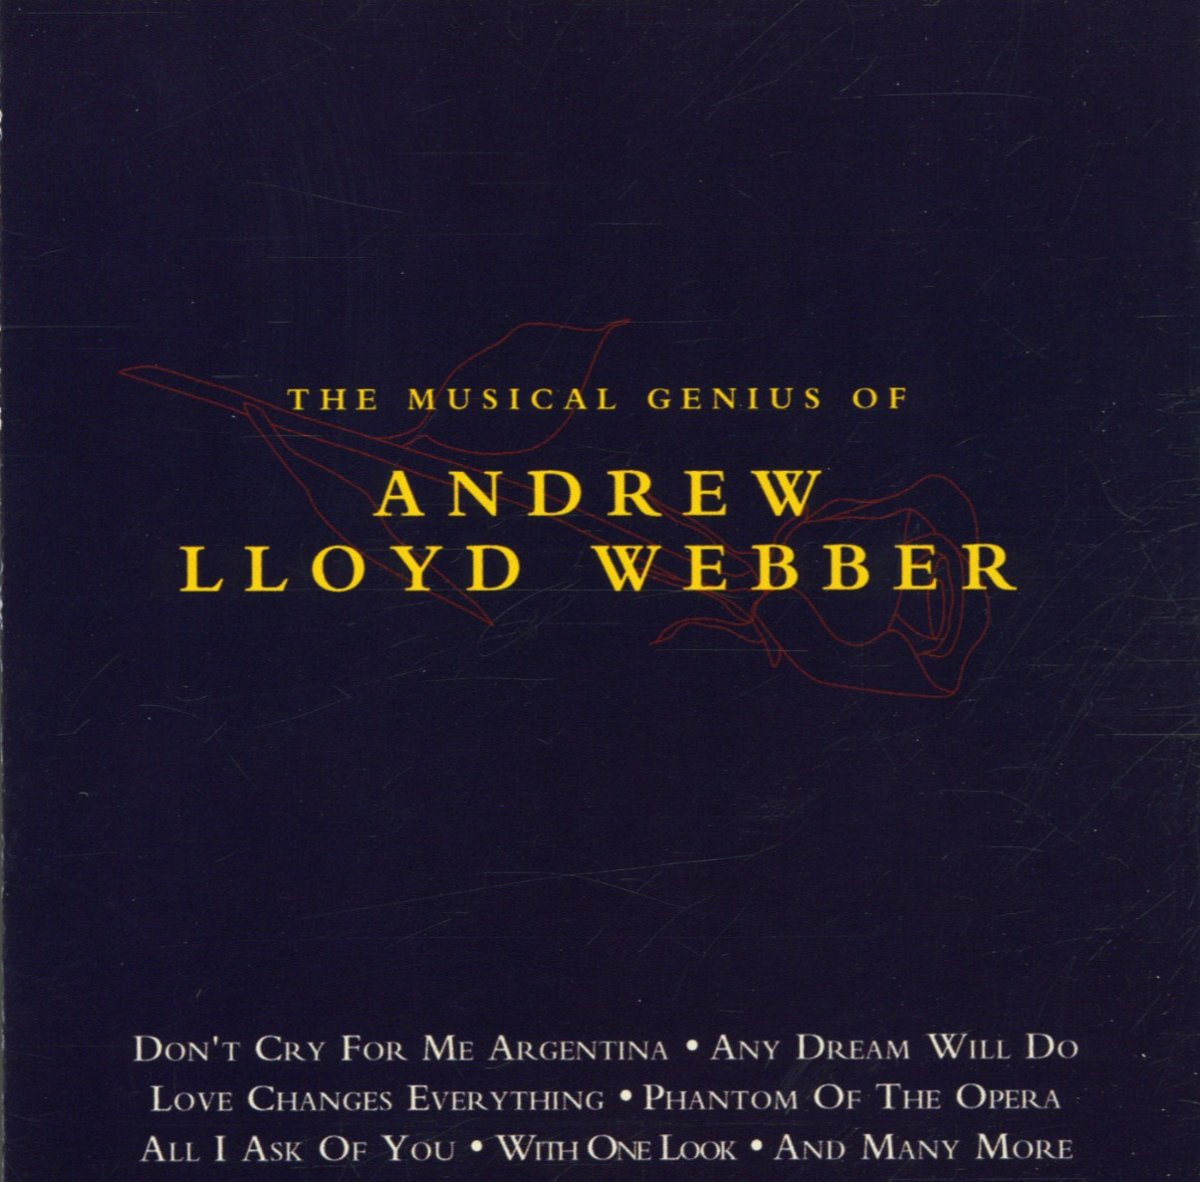 The Musical Genius Of Andrew Lloyd Webber kopen